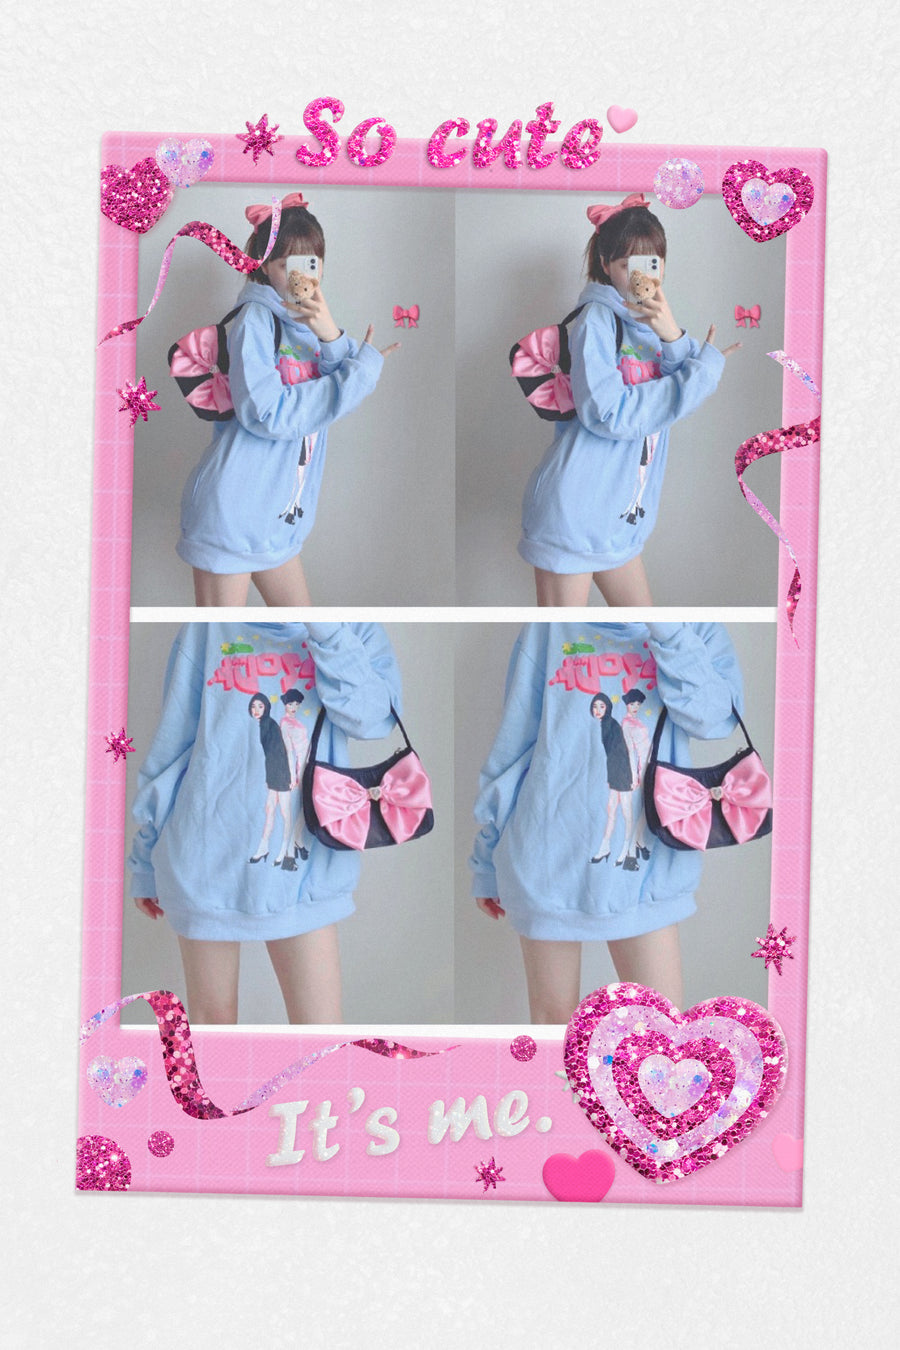 Barbie Girl Mini Bag - Peiliee Shop